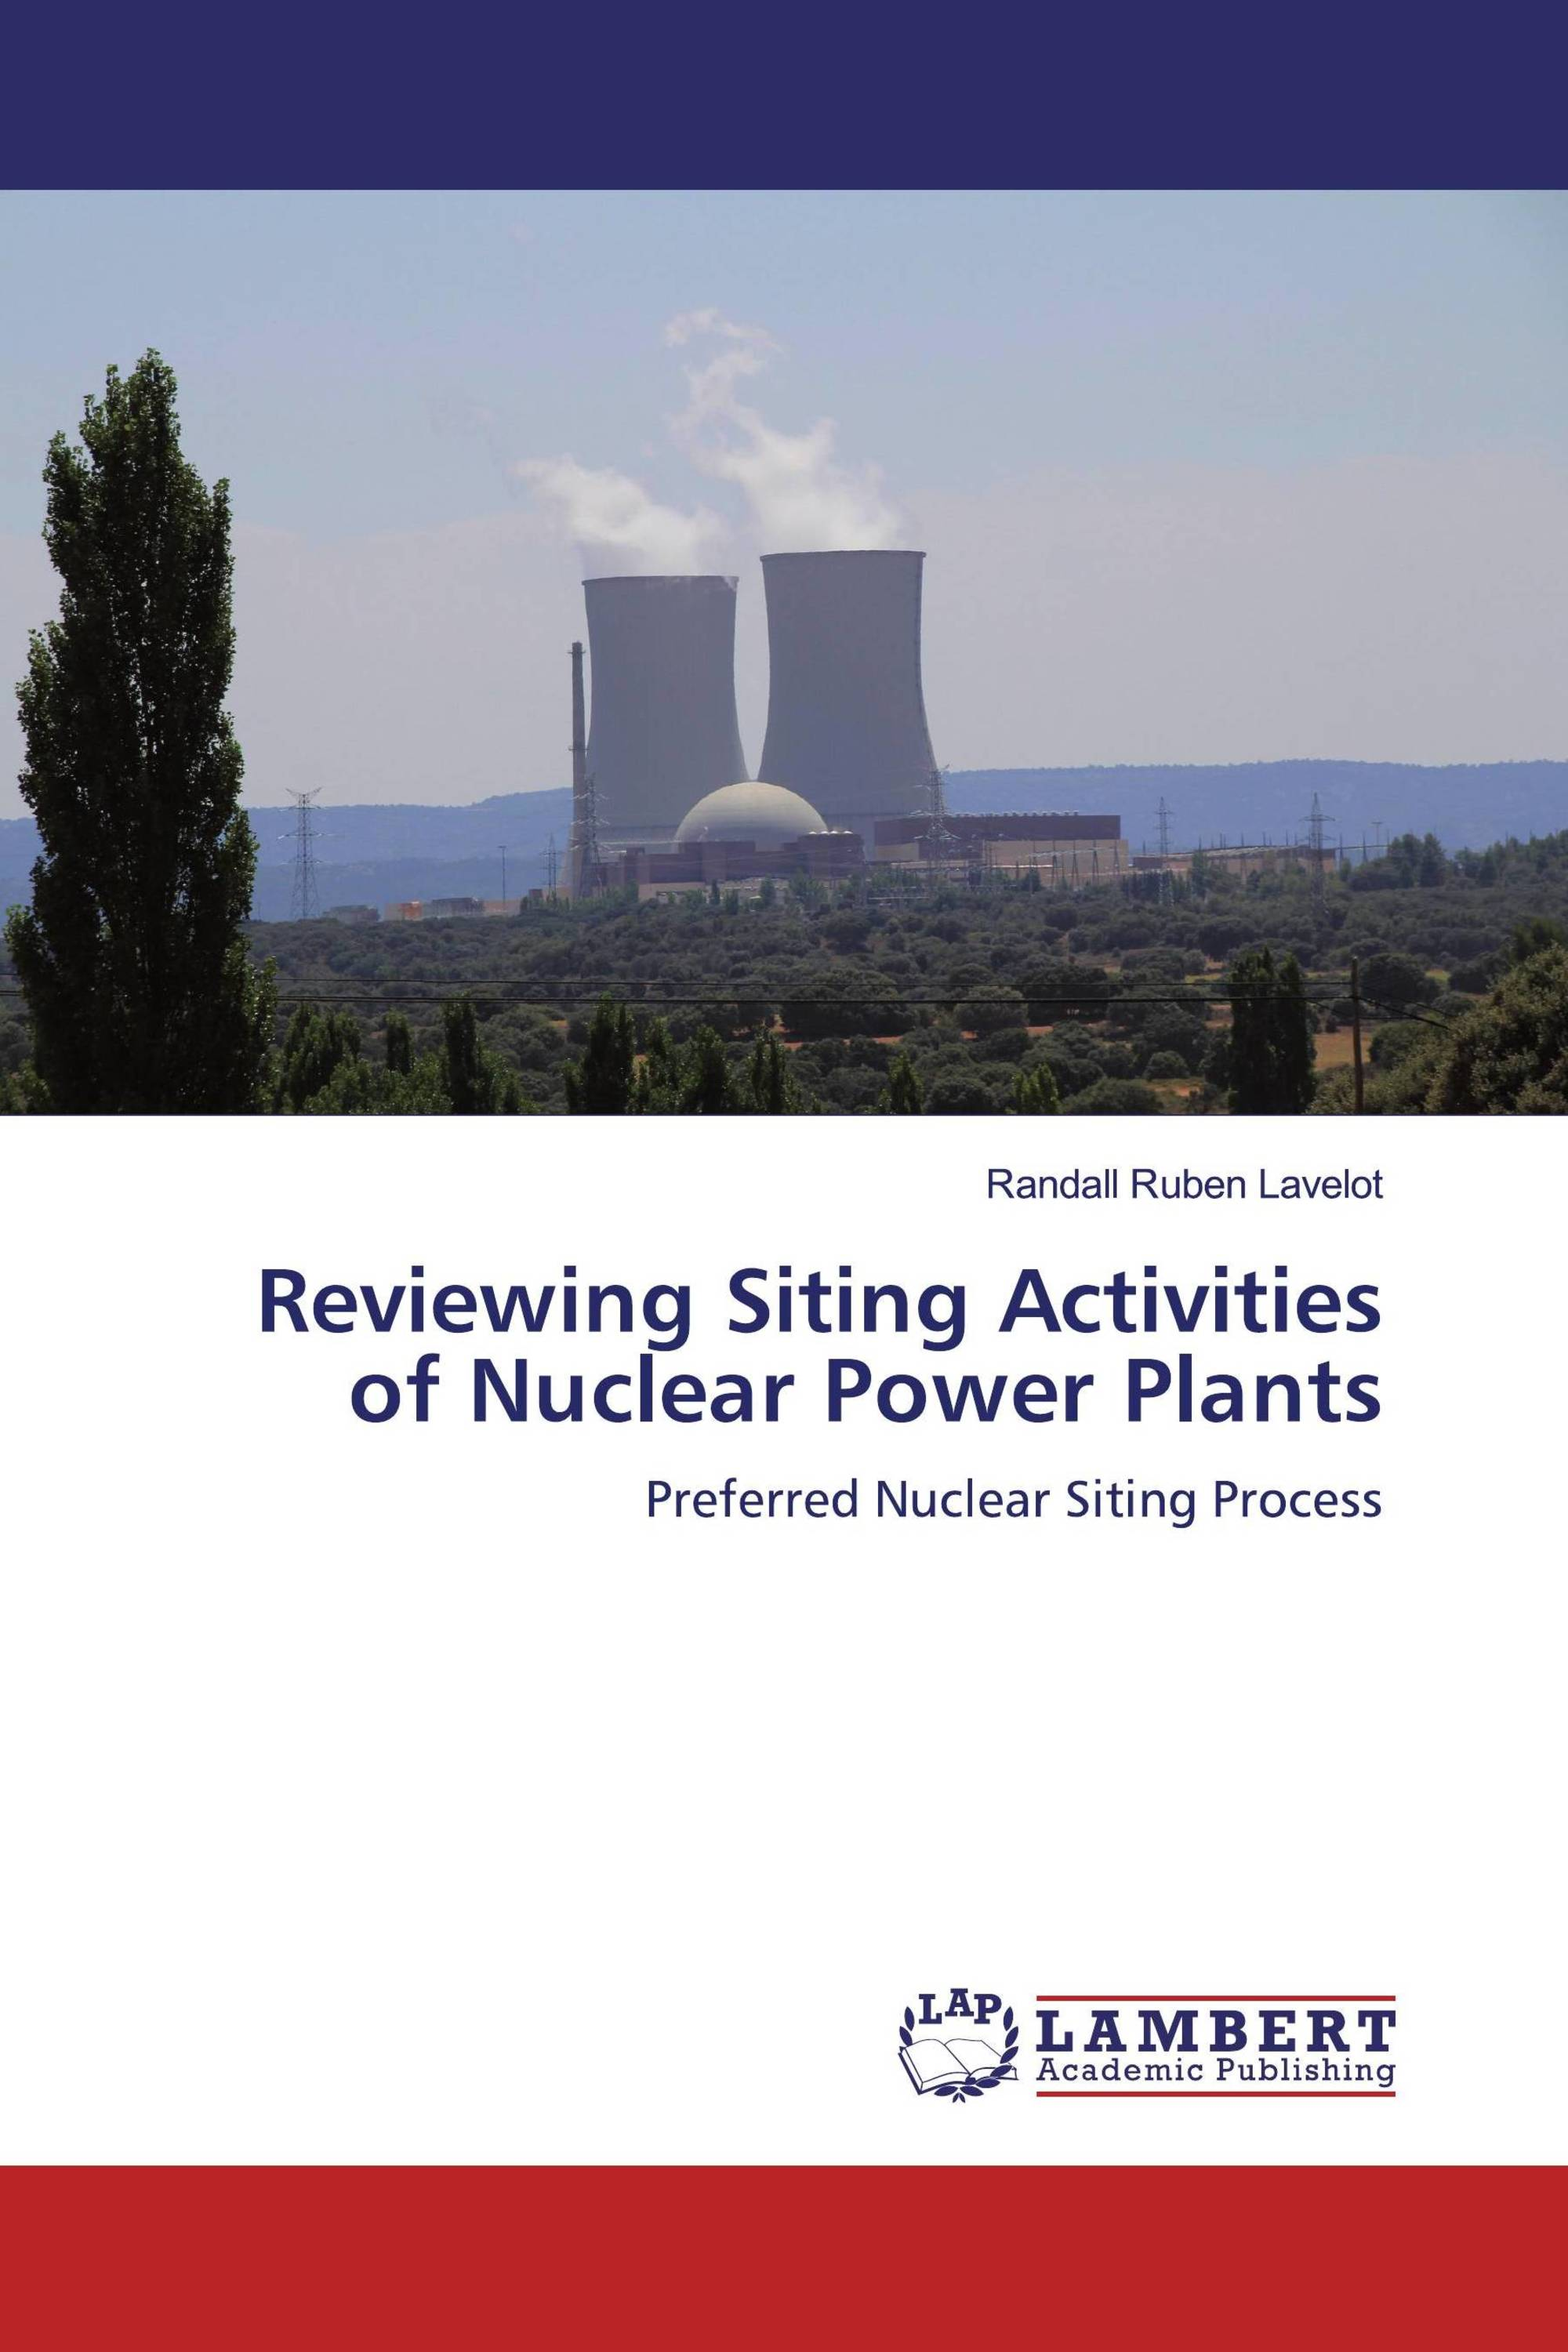 Reviewing Siting Activities of Nuclear Power Plants